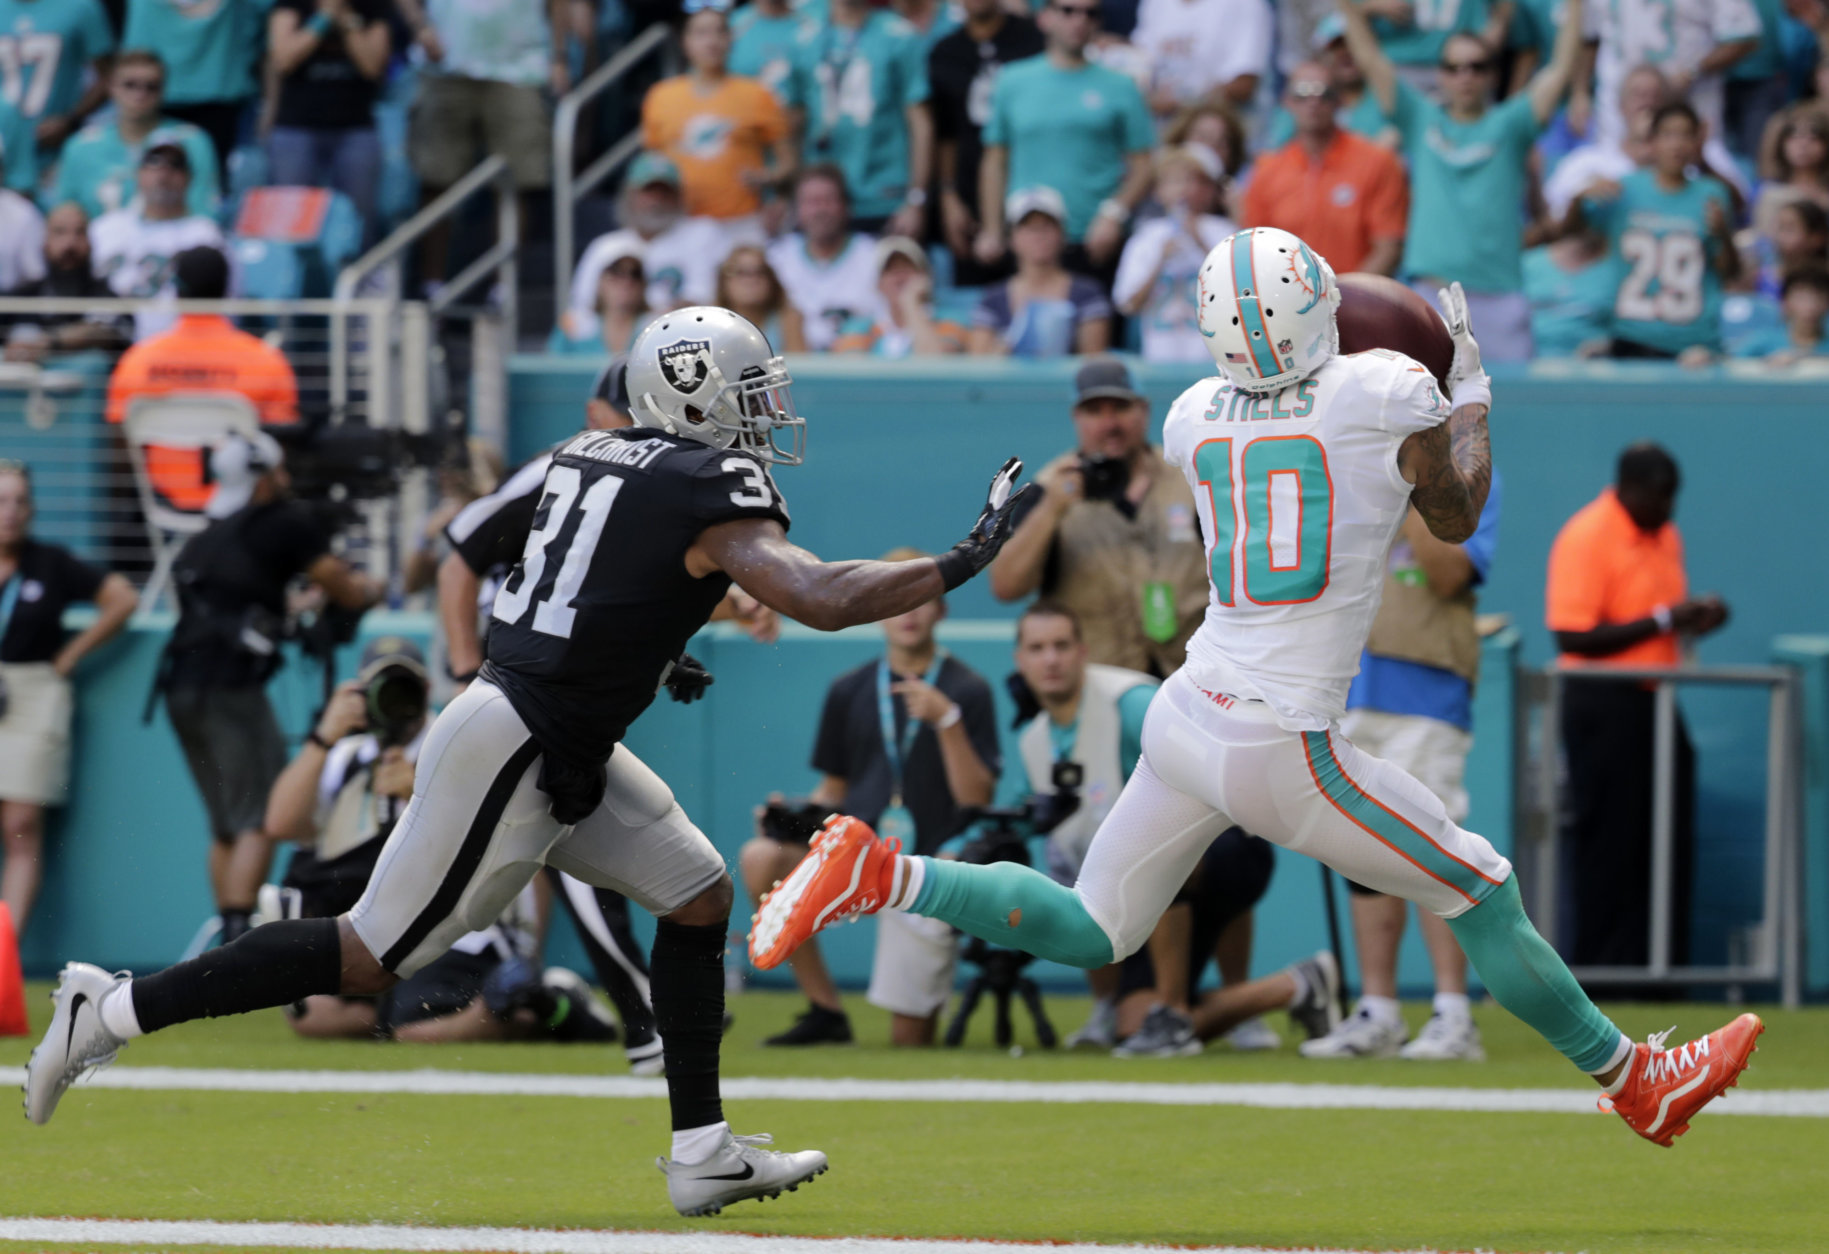 Miami Dolphins wide receiver Kenny Stills (10) catches a touchdown pass as he is pursued by Oakland Raiders defensive back Marcus Gilchrist (31) during the first half of an NFL football game, Sunday, Sept. 23, 2018, in Miami Gardens, Fla. (AP Photo/Brynn Anderson)